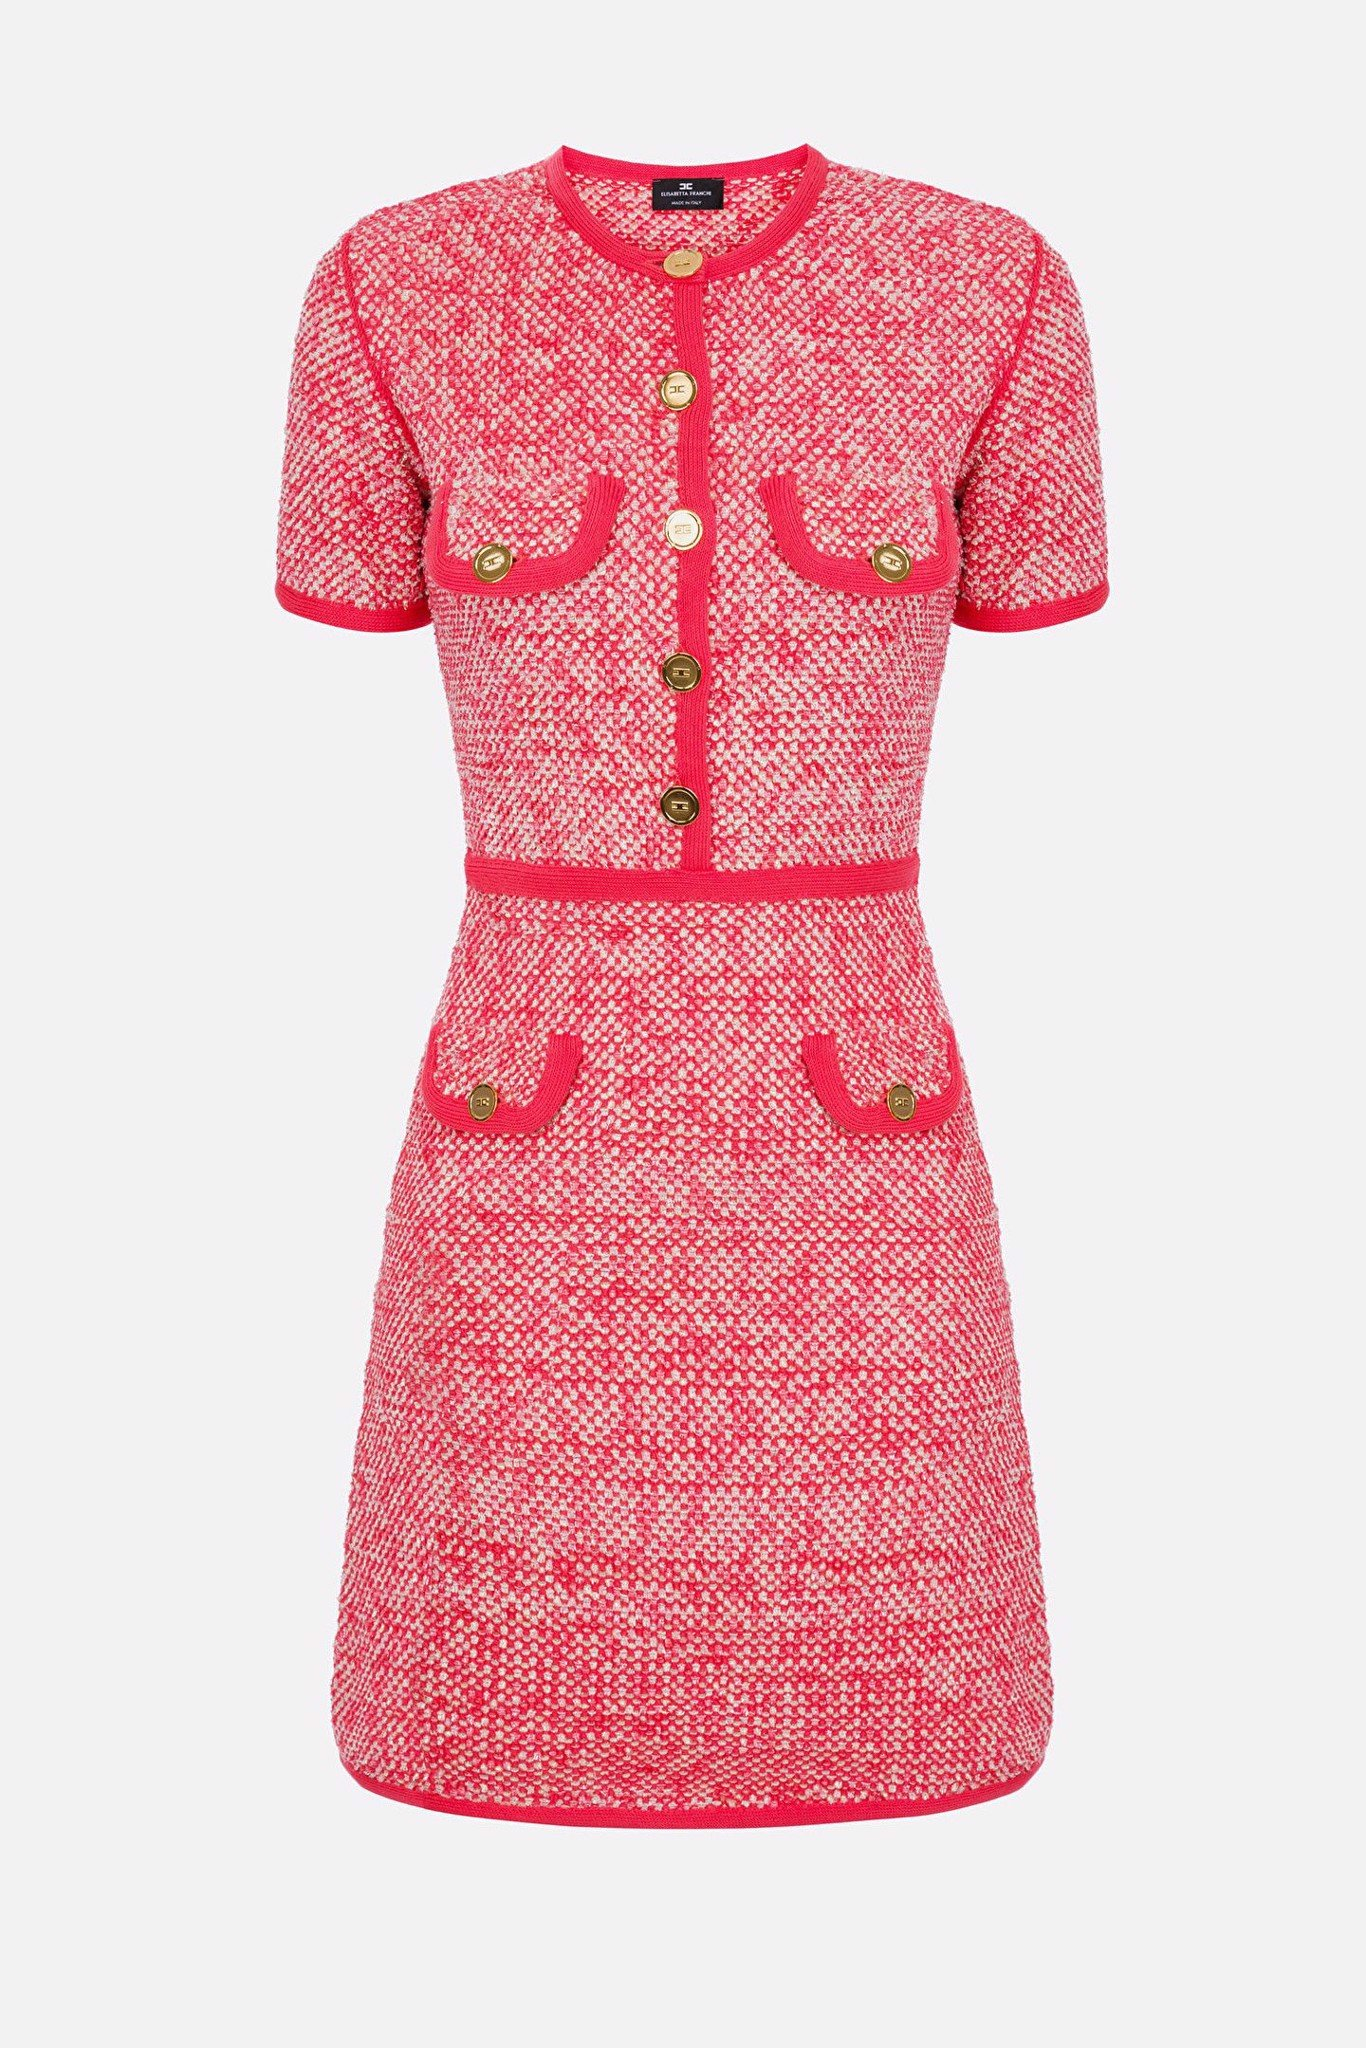 Woman's Knitted Dress